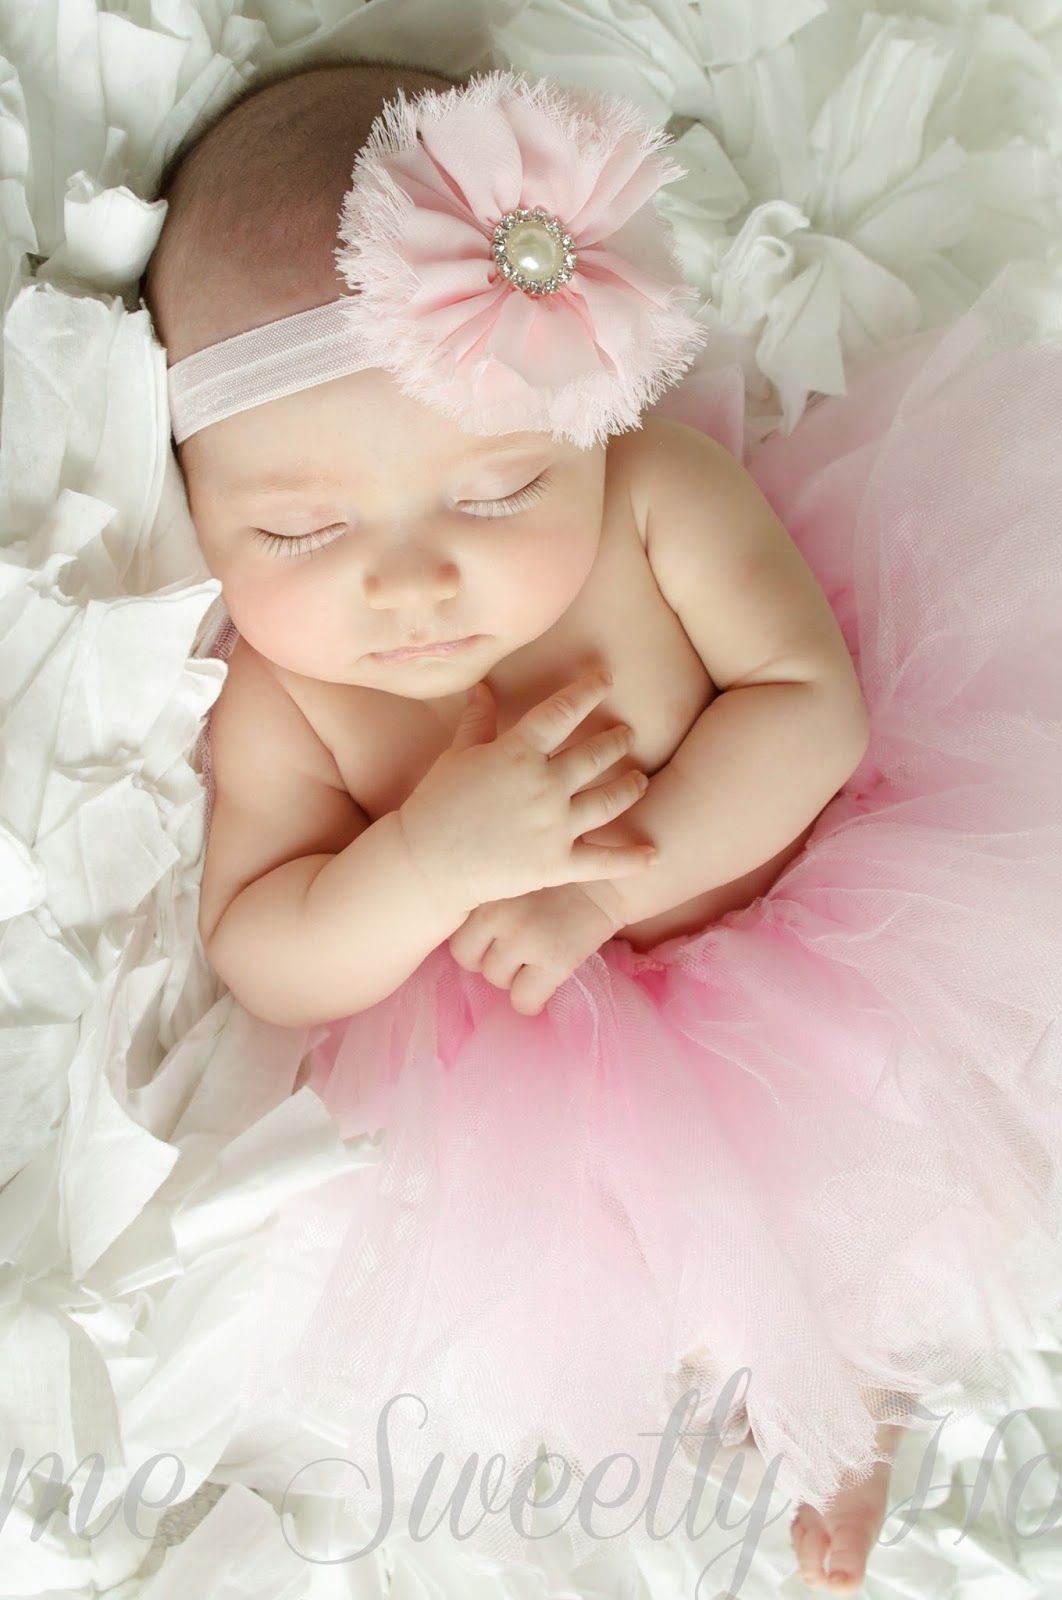 9b43b8fd2 Home Sweetly Home: Photography Sneak Peek ~ Rowdi 8 Weeks. Newborn  photography. Baby photos. Tutu styled shoot